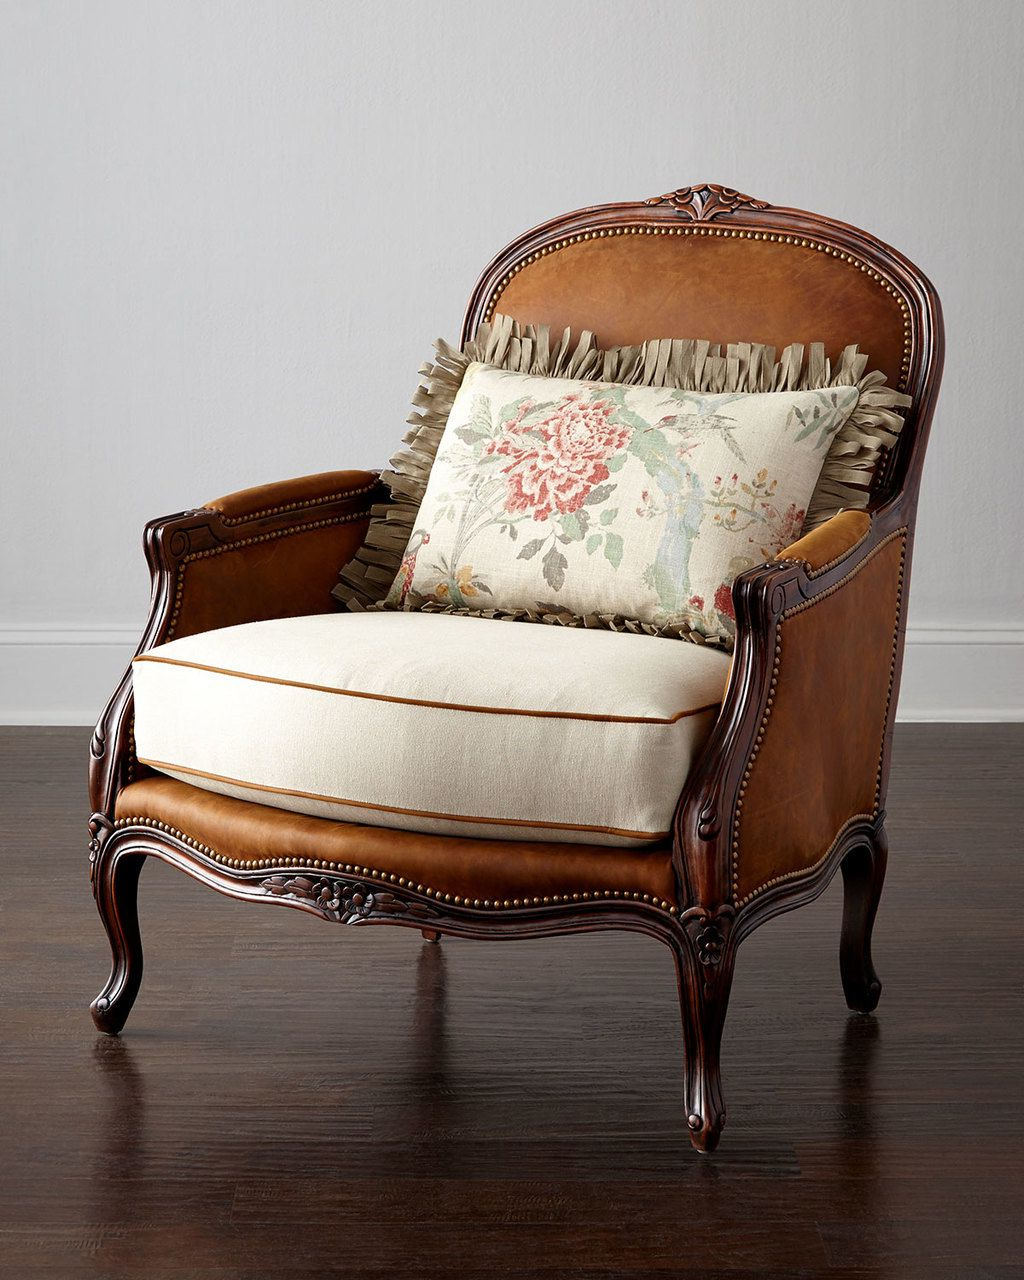 Current Cosette Leather Sofa Chairs Within Massoud Cosette Chair $2750 Free Shipping Or Pick Up – Compare (View 10 of 20)